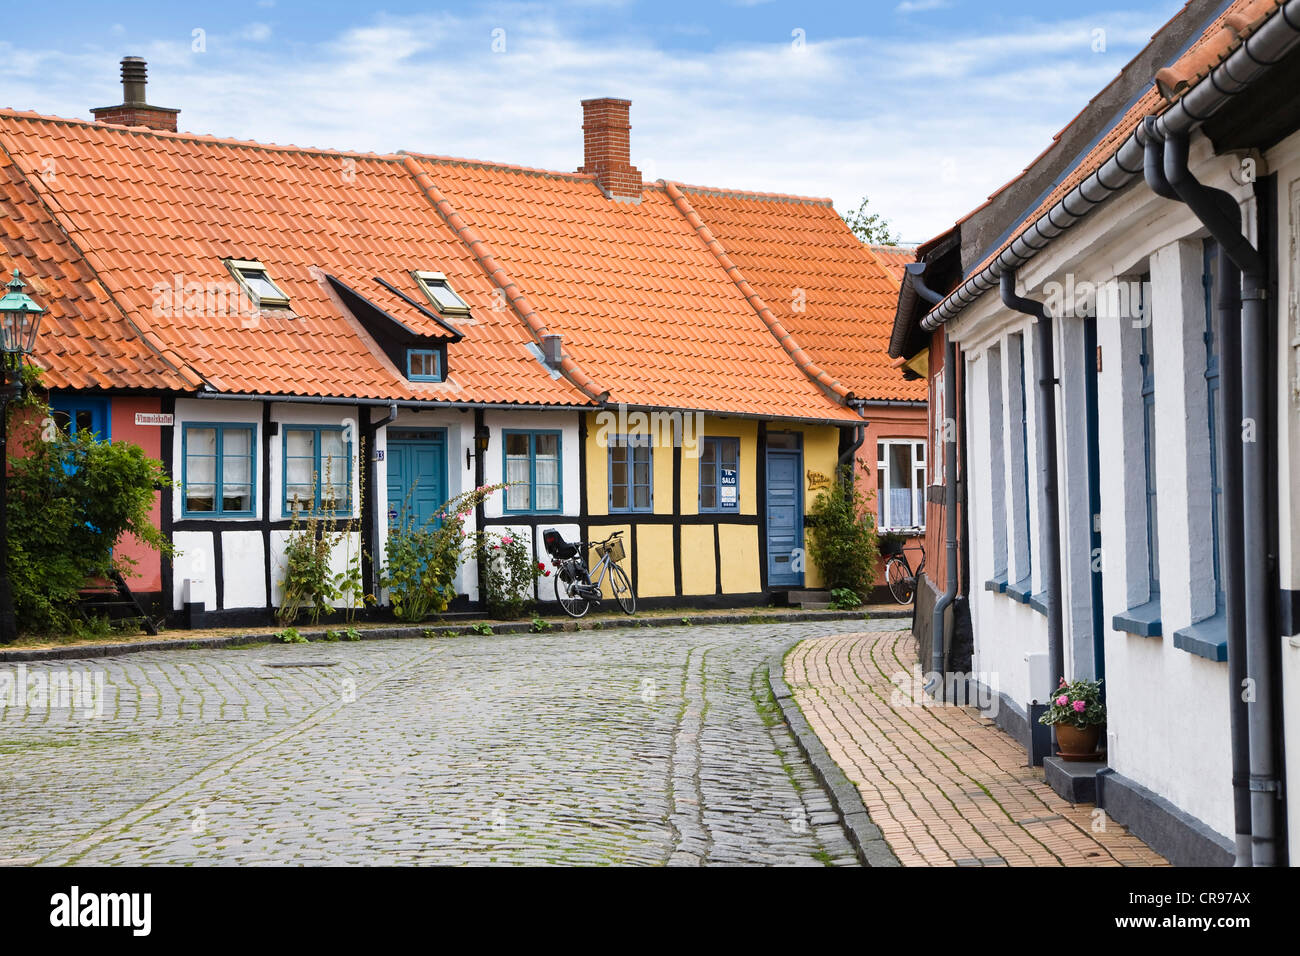 Timber-framed houses in Rønne, Bornholm, Denmark, Europe - Stock Image